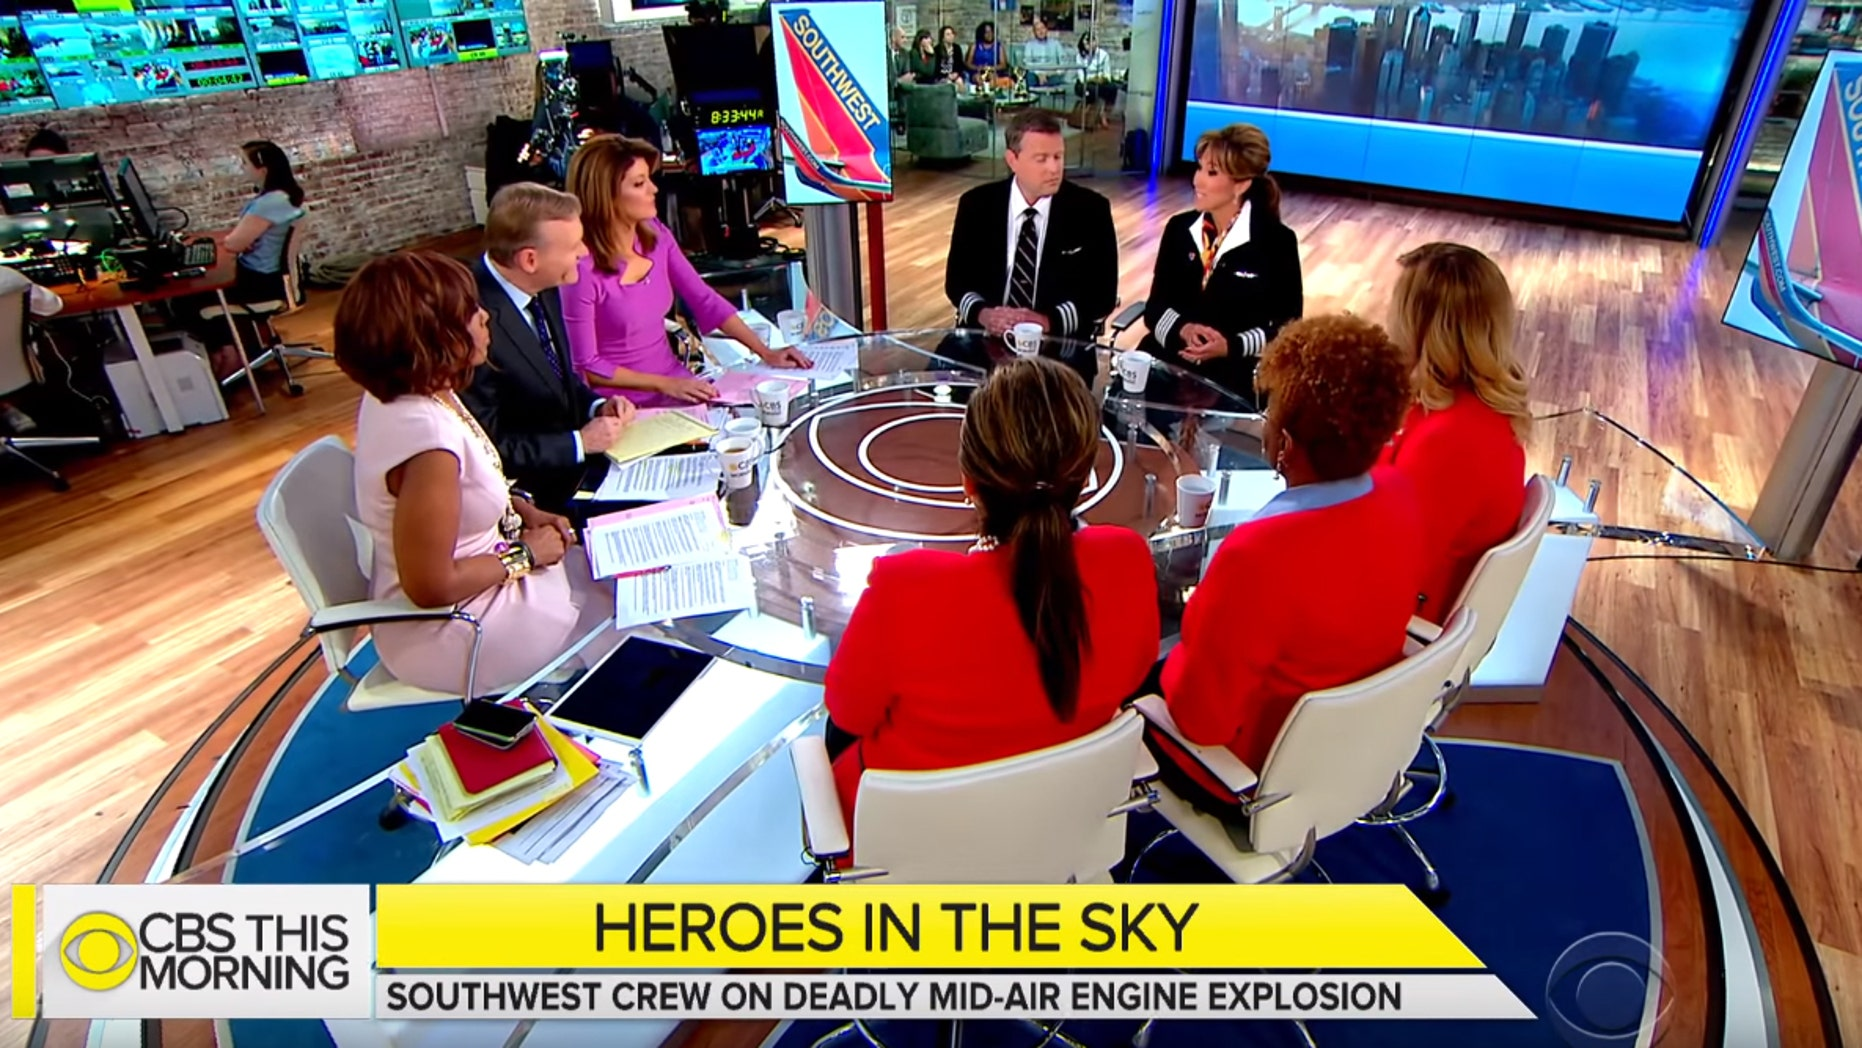 The crew of Southwest Flight 1380 say they formed a bond based on trust, faith and communication.